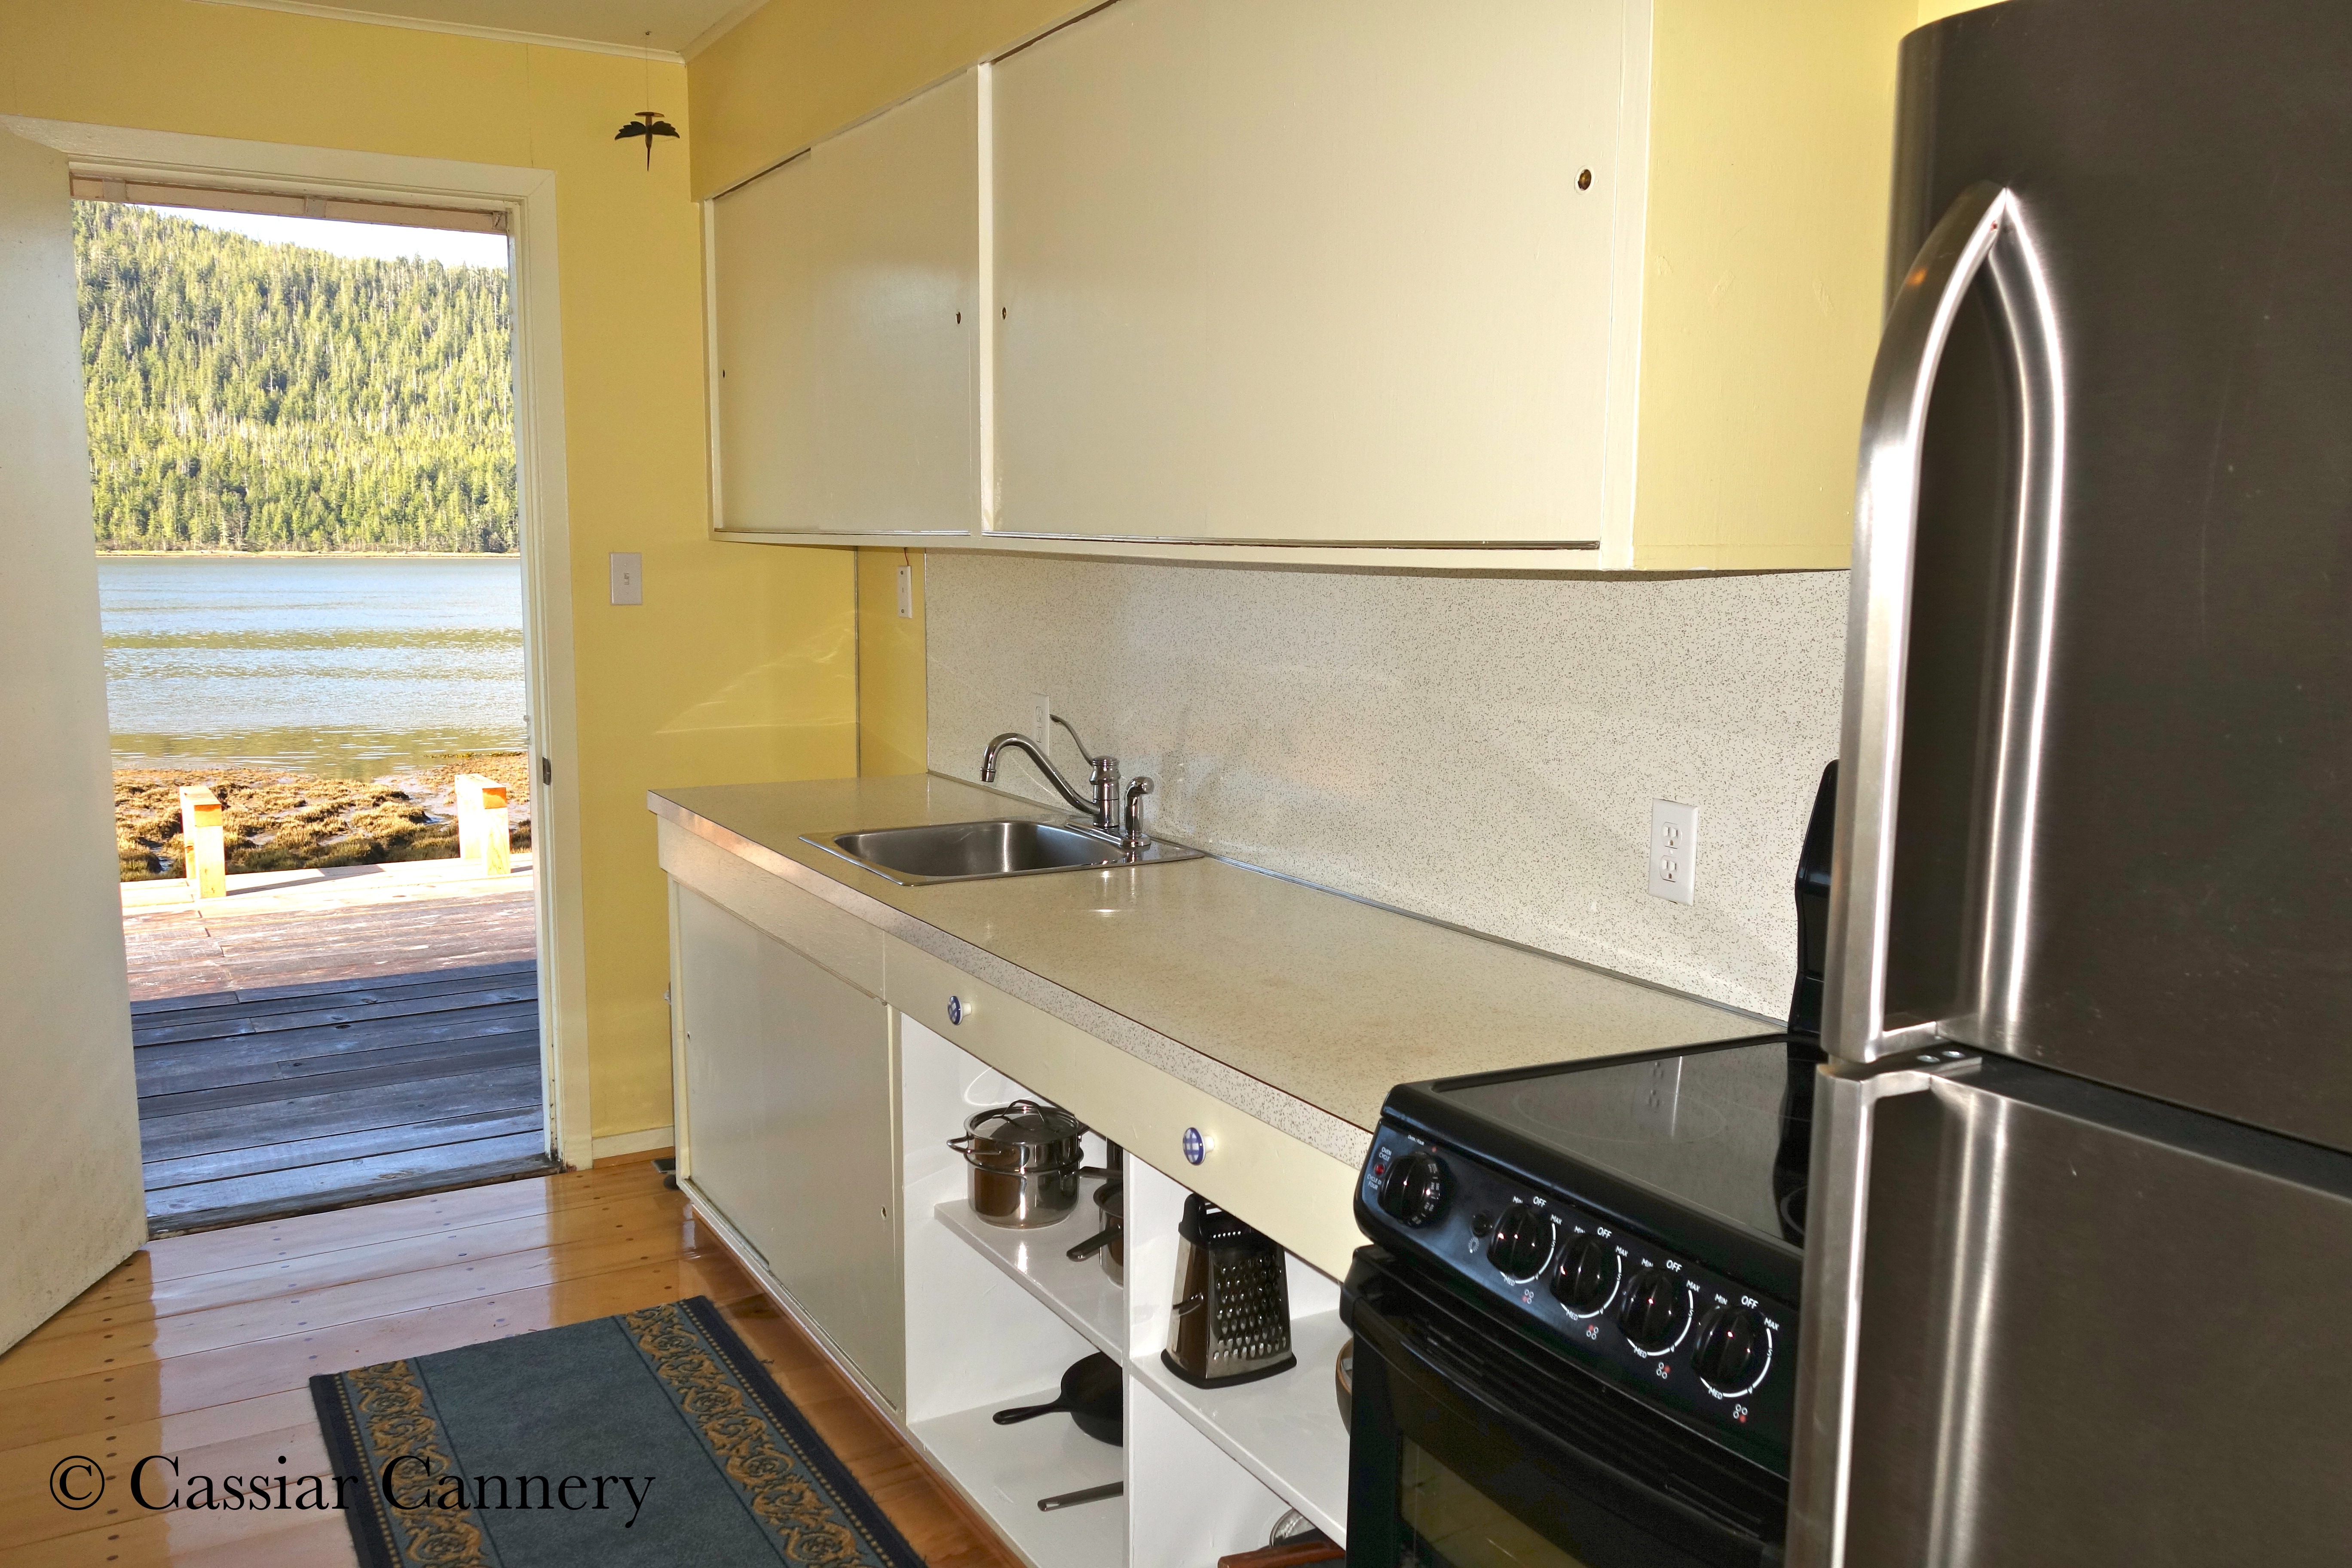 Cassiar Cannery - Steelhead House - galley style kitchen with new appliances